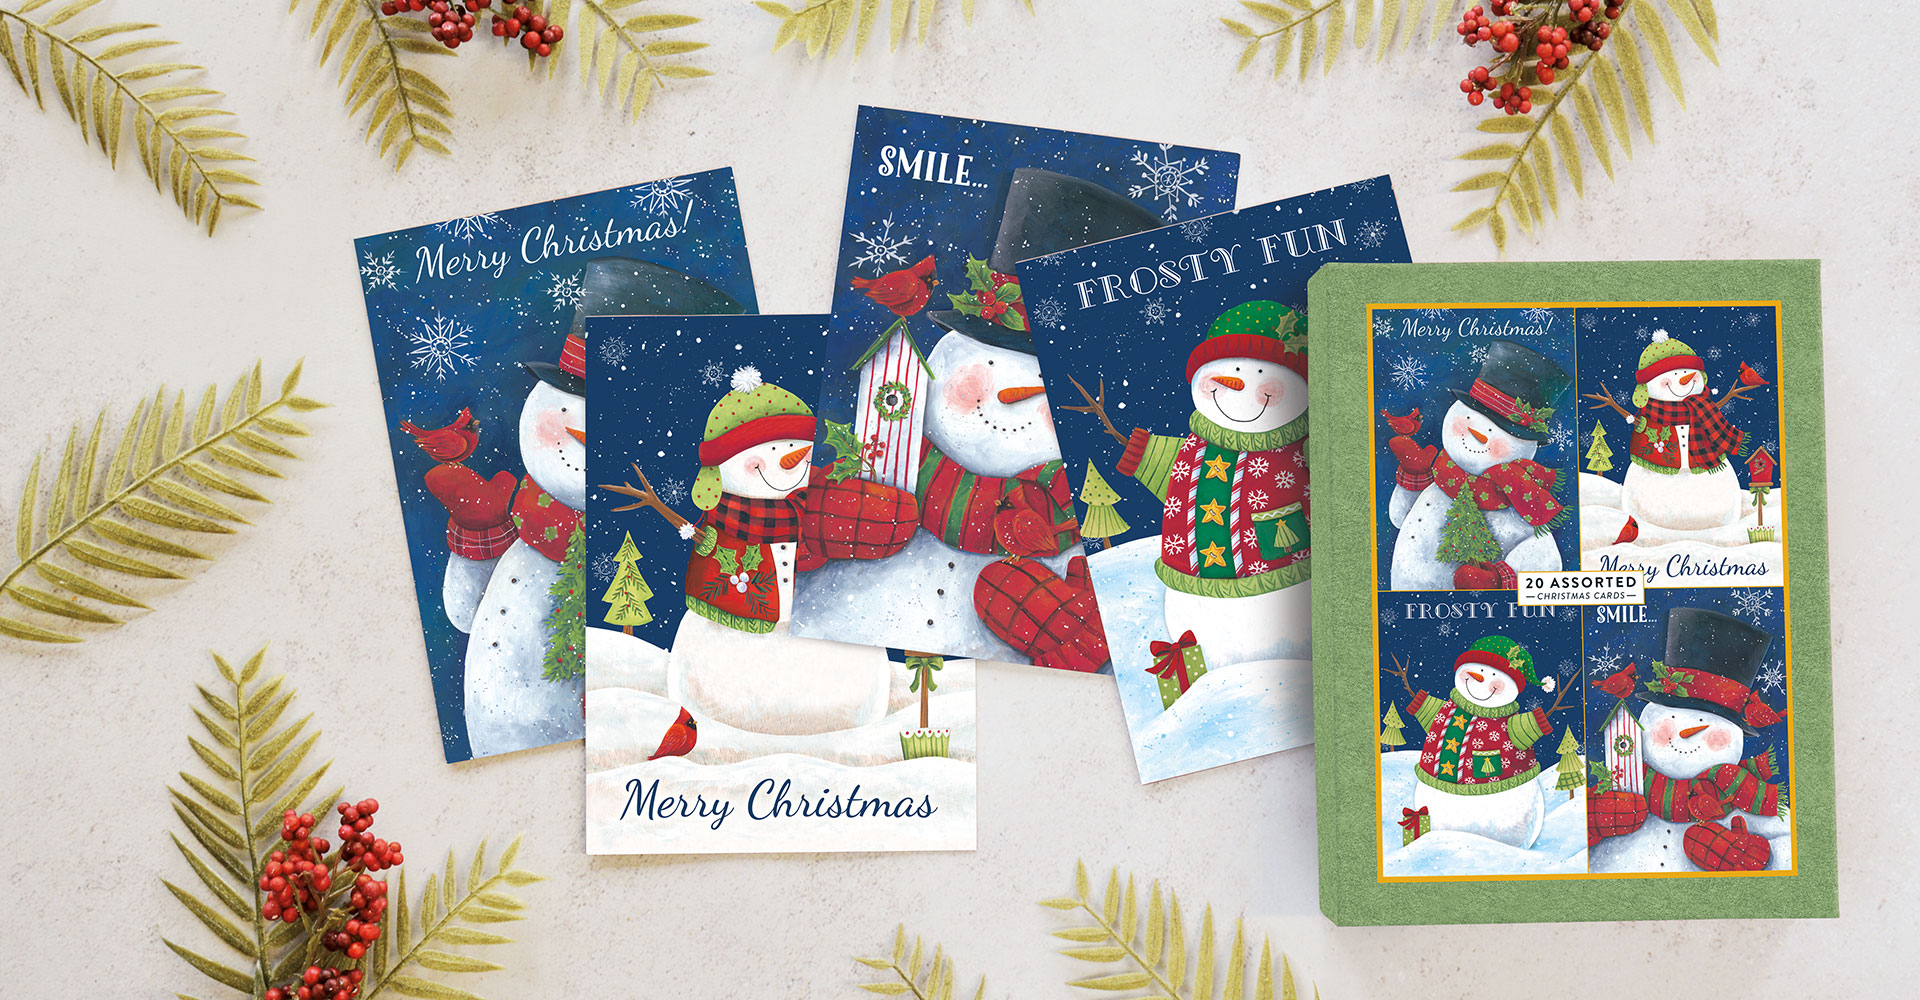 Assorted Boxed Holiday Cards